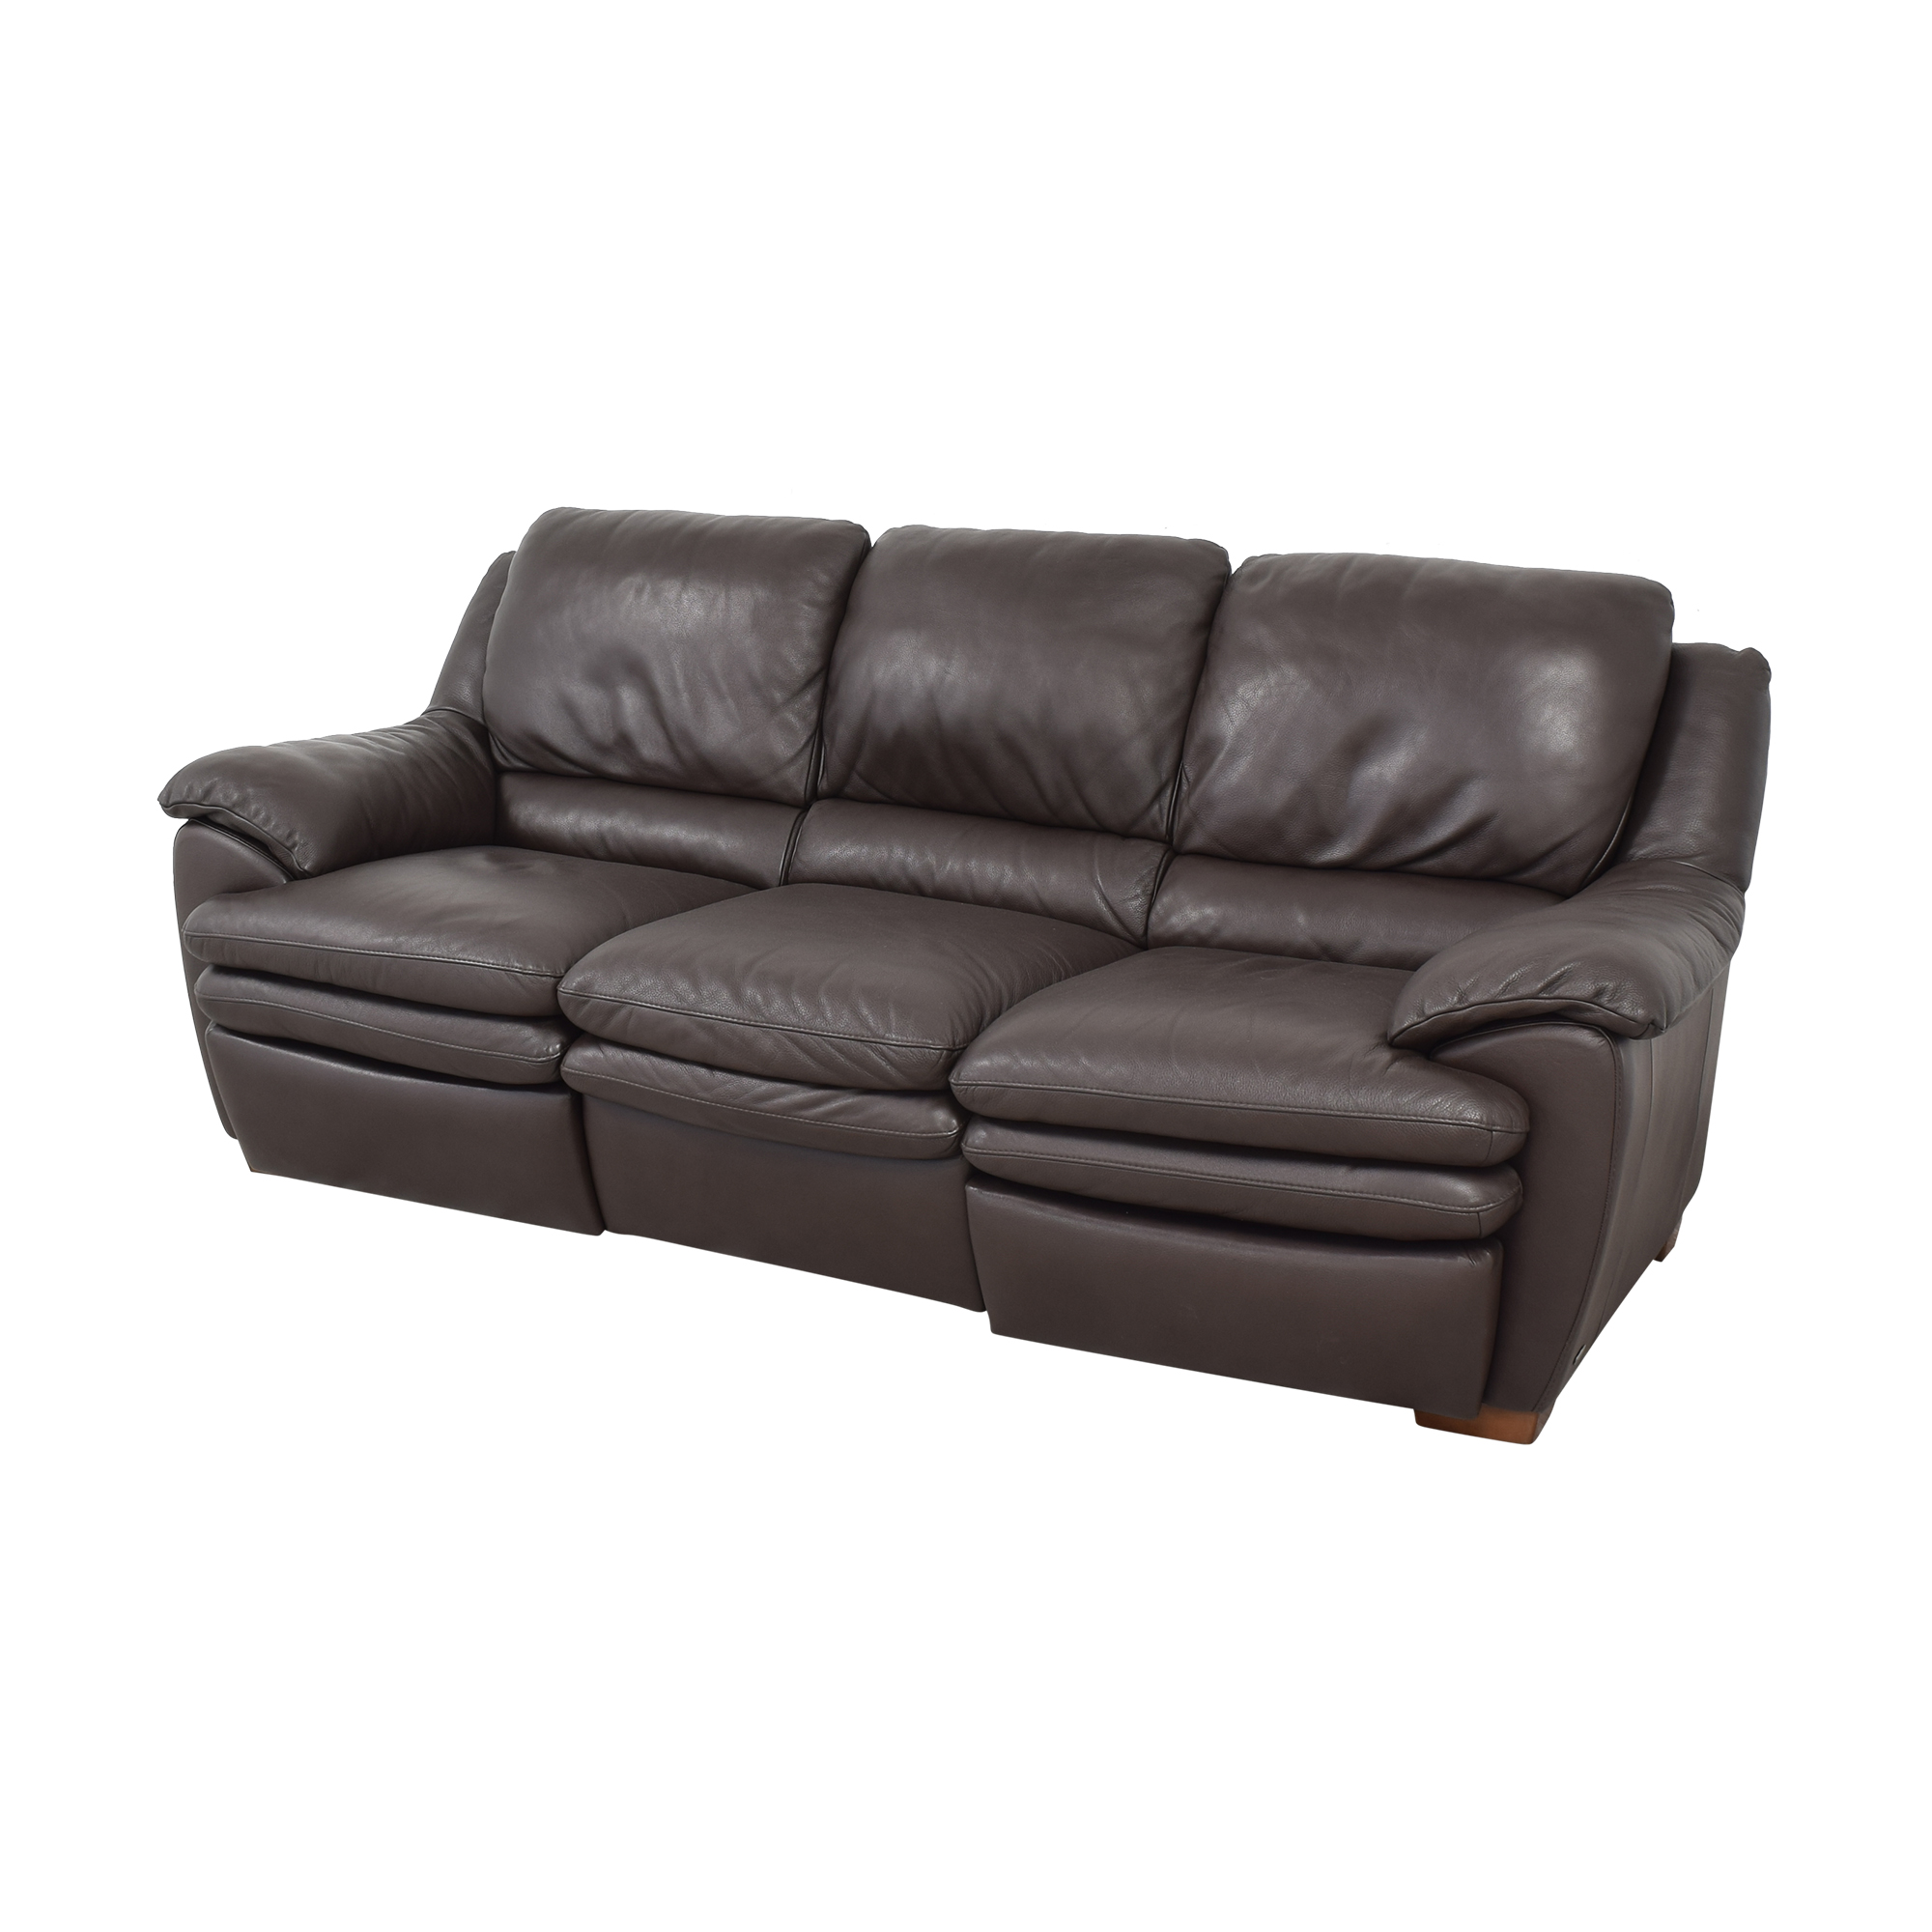 Raymour & Flanigan Raymour & Flanigan Natuzzi Reclining Sofa coupon